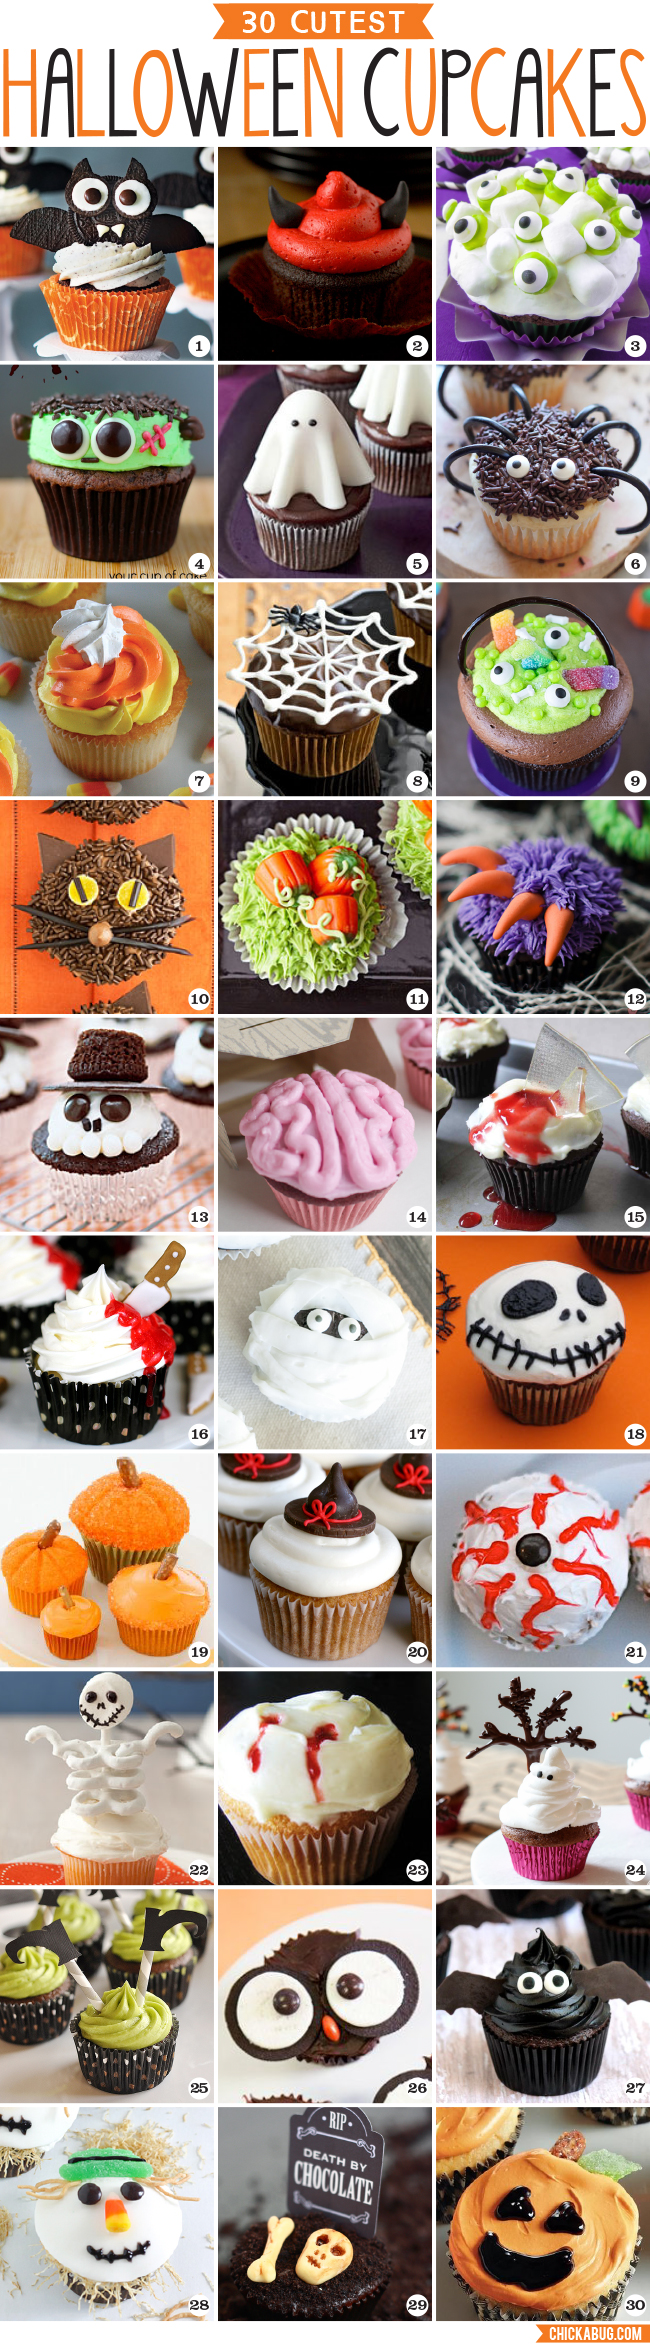 30 Cutest Halloween Cupcakes! Adorable ideas for Halloween cupcake decorating!